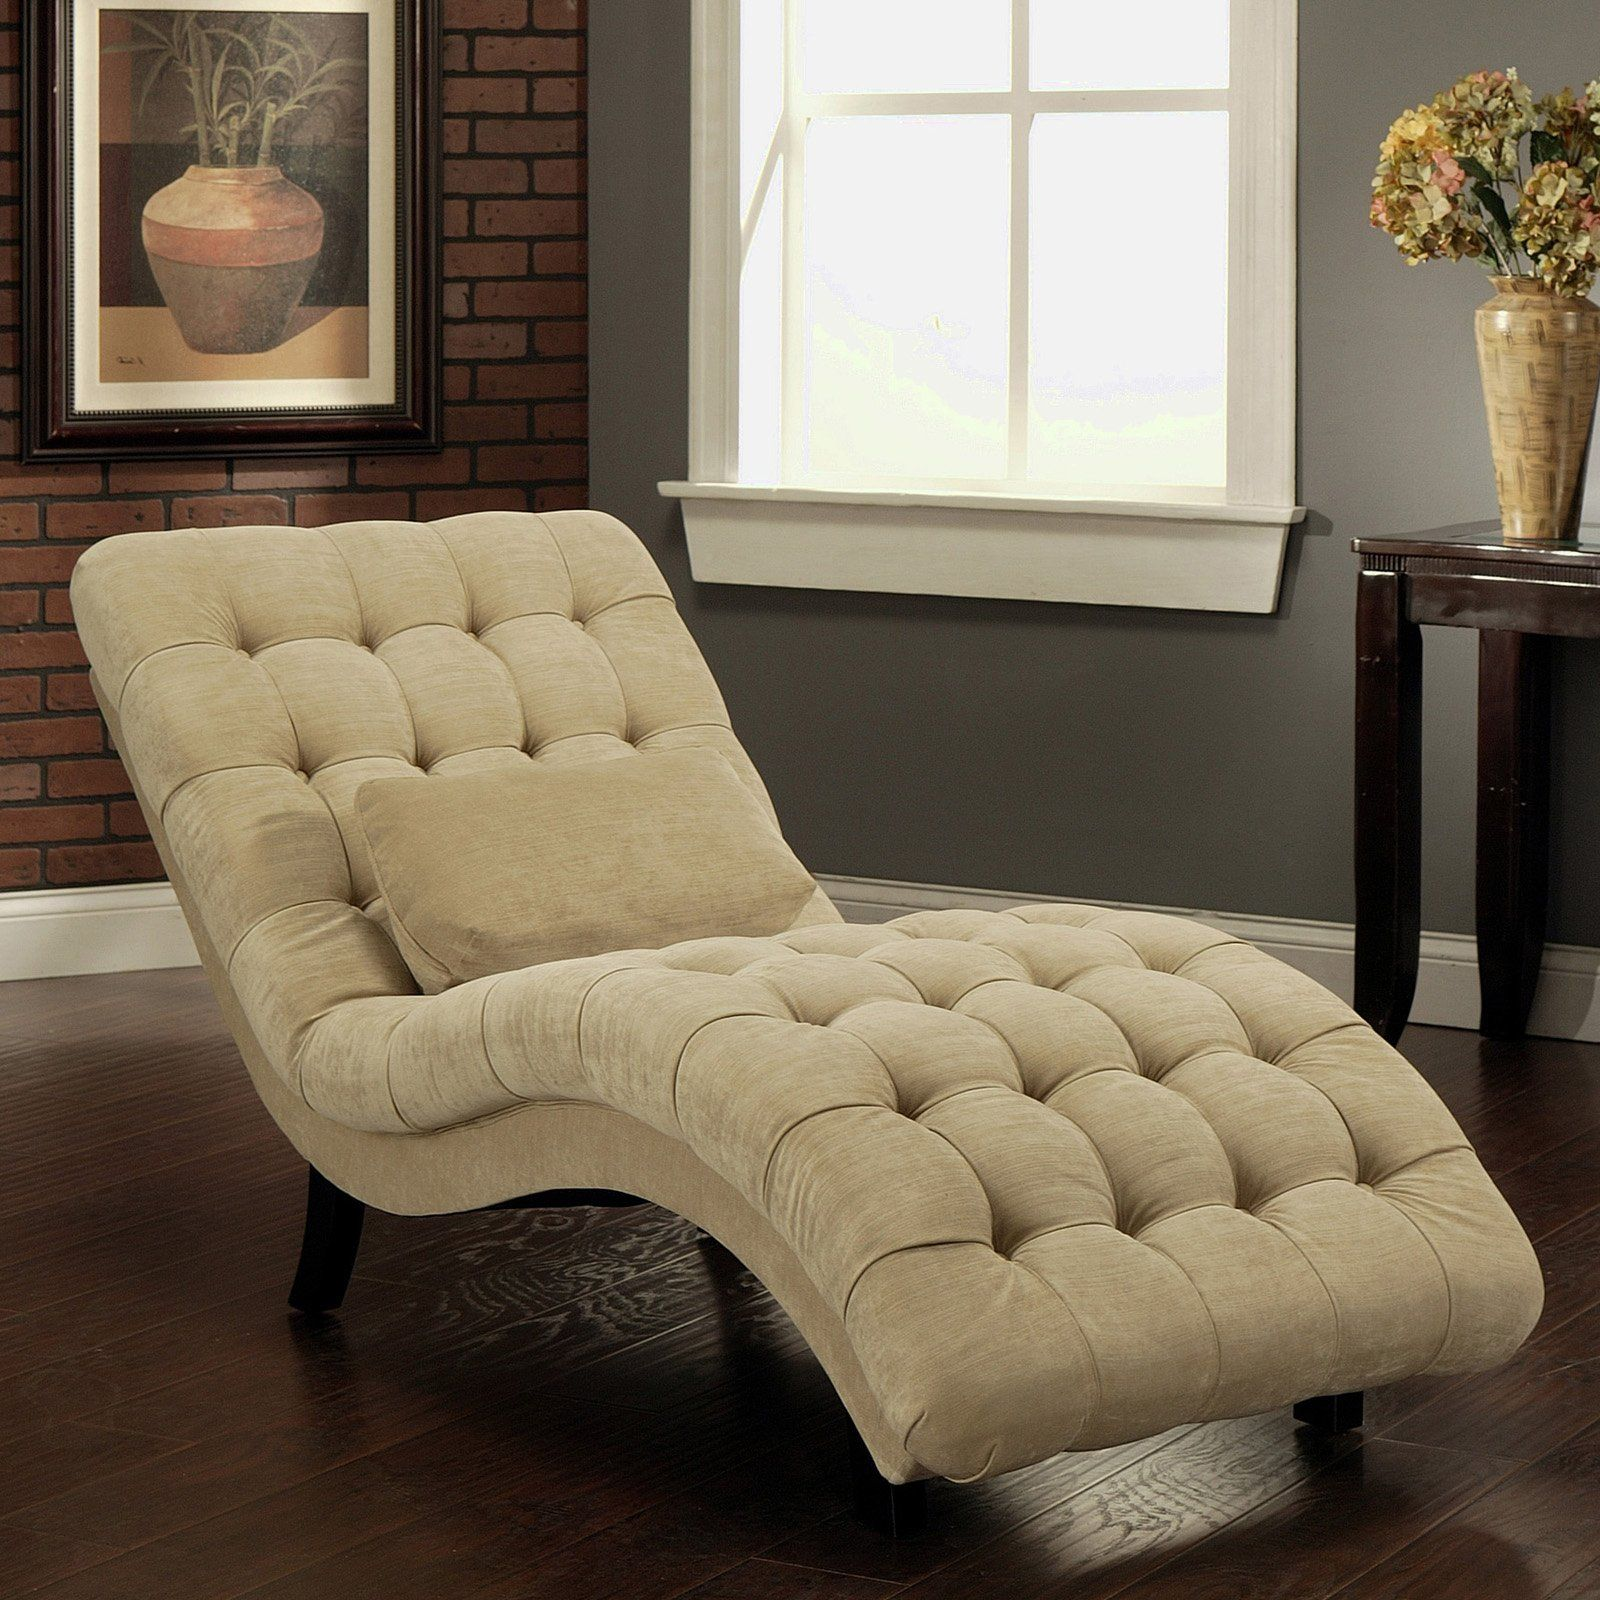 Thatcher Fabric Chaise Lounge $629